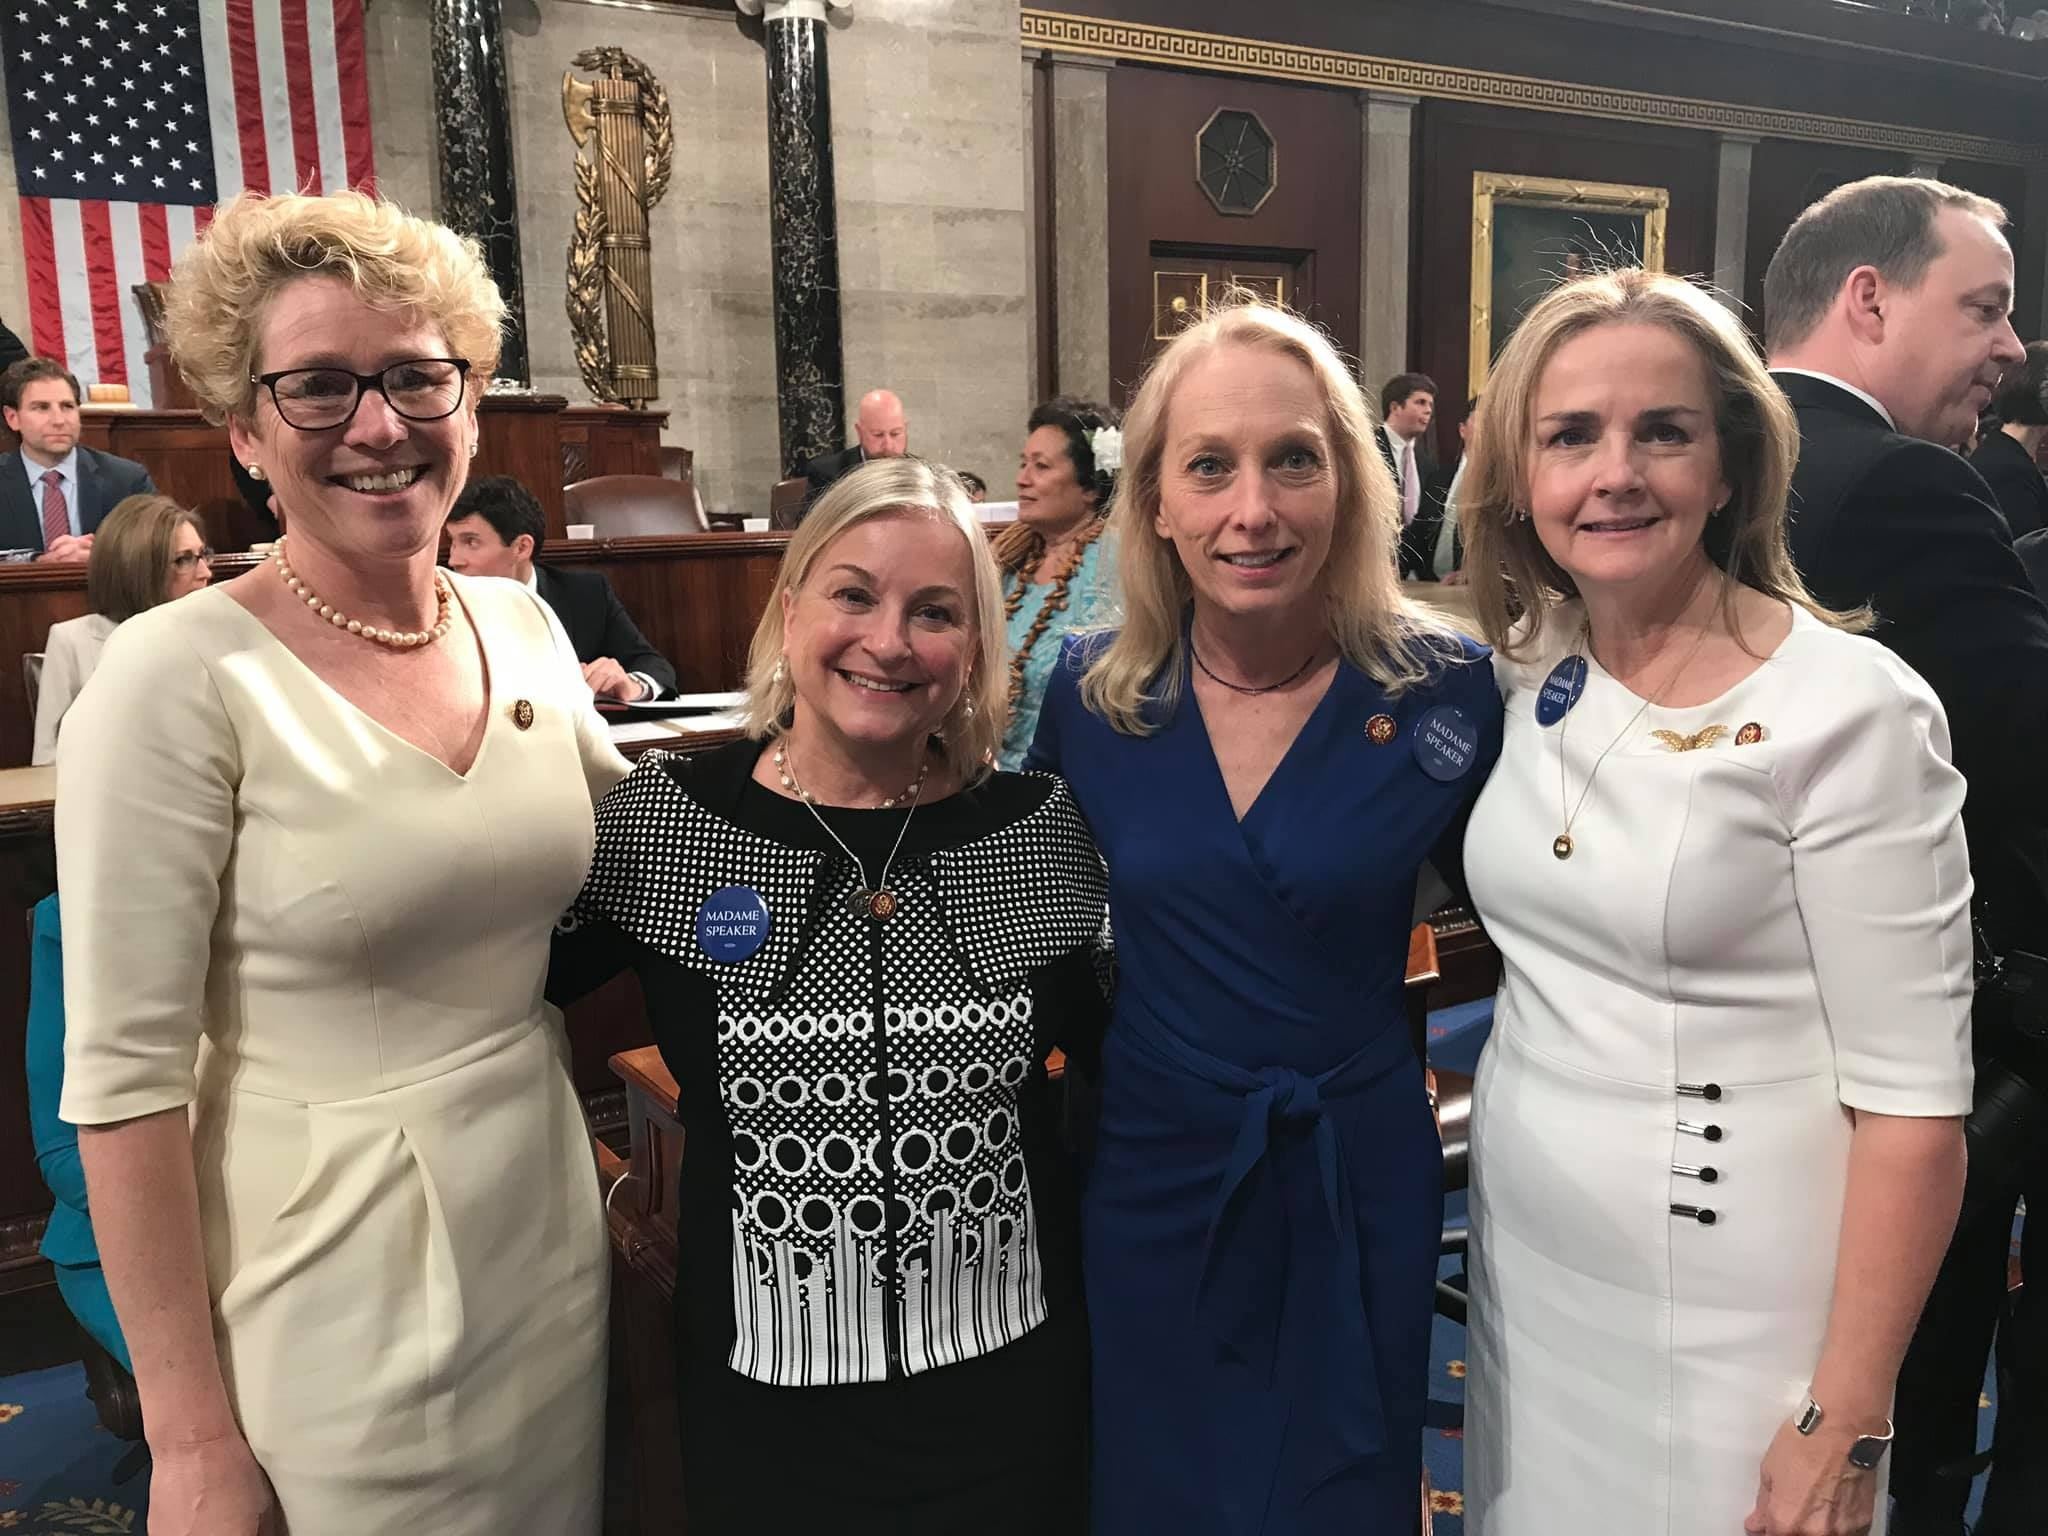 Congresswoman Dean and Others - January 3 2019.jpg